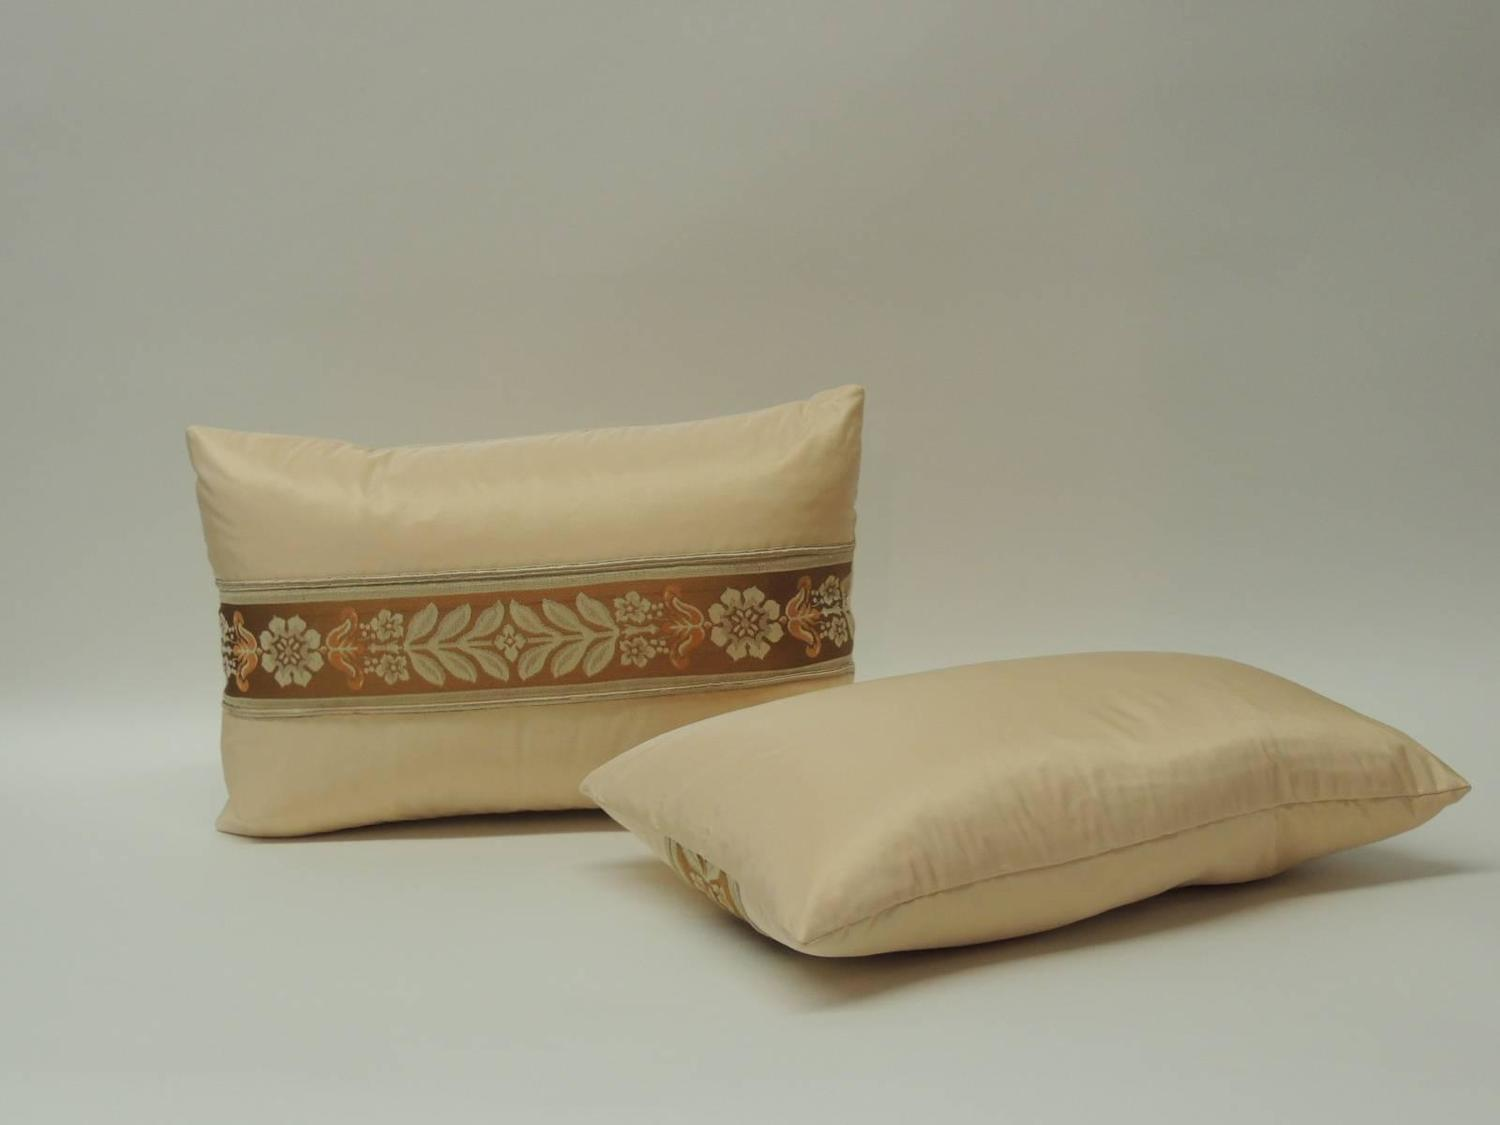 french silk ribbon lumbar decorative pillows for sale at 1stdibs